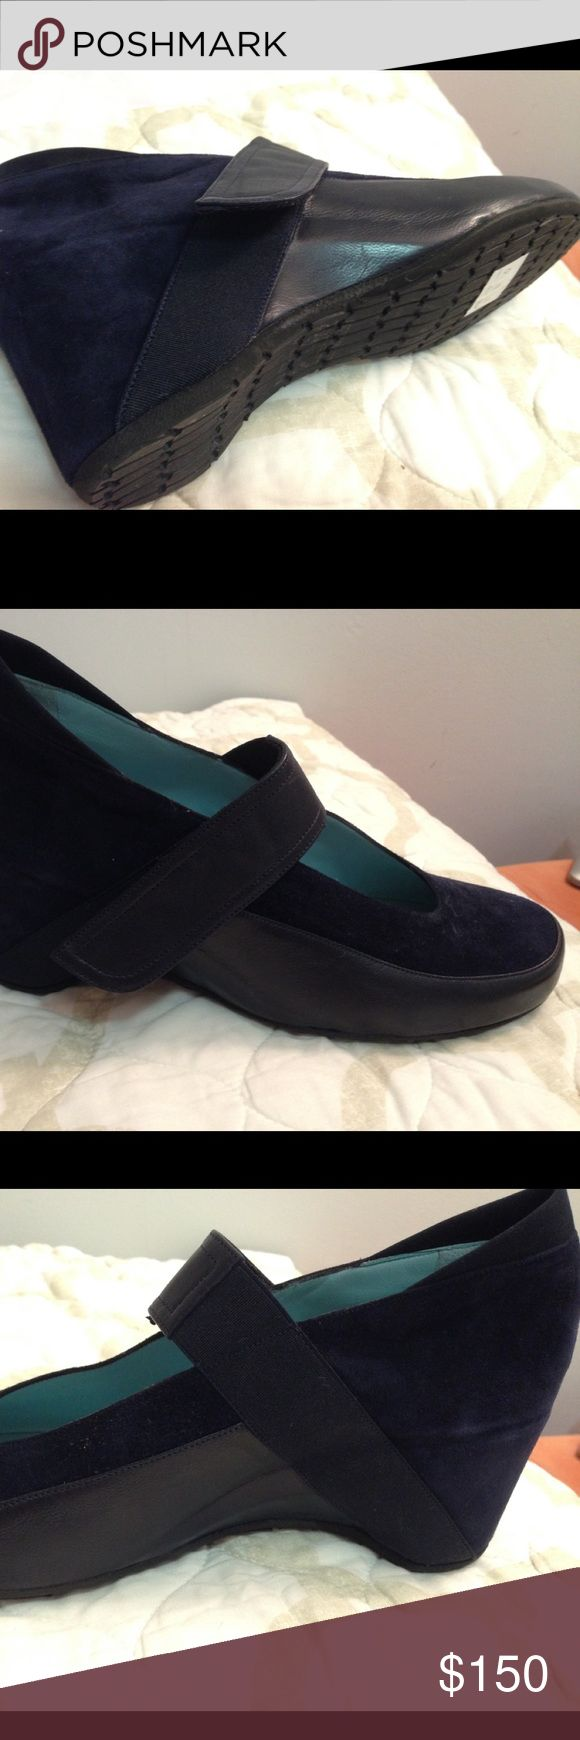 Shoes Italian Blue shoes grand new Thierry Rabotin Shoes Moccasins